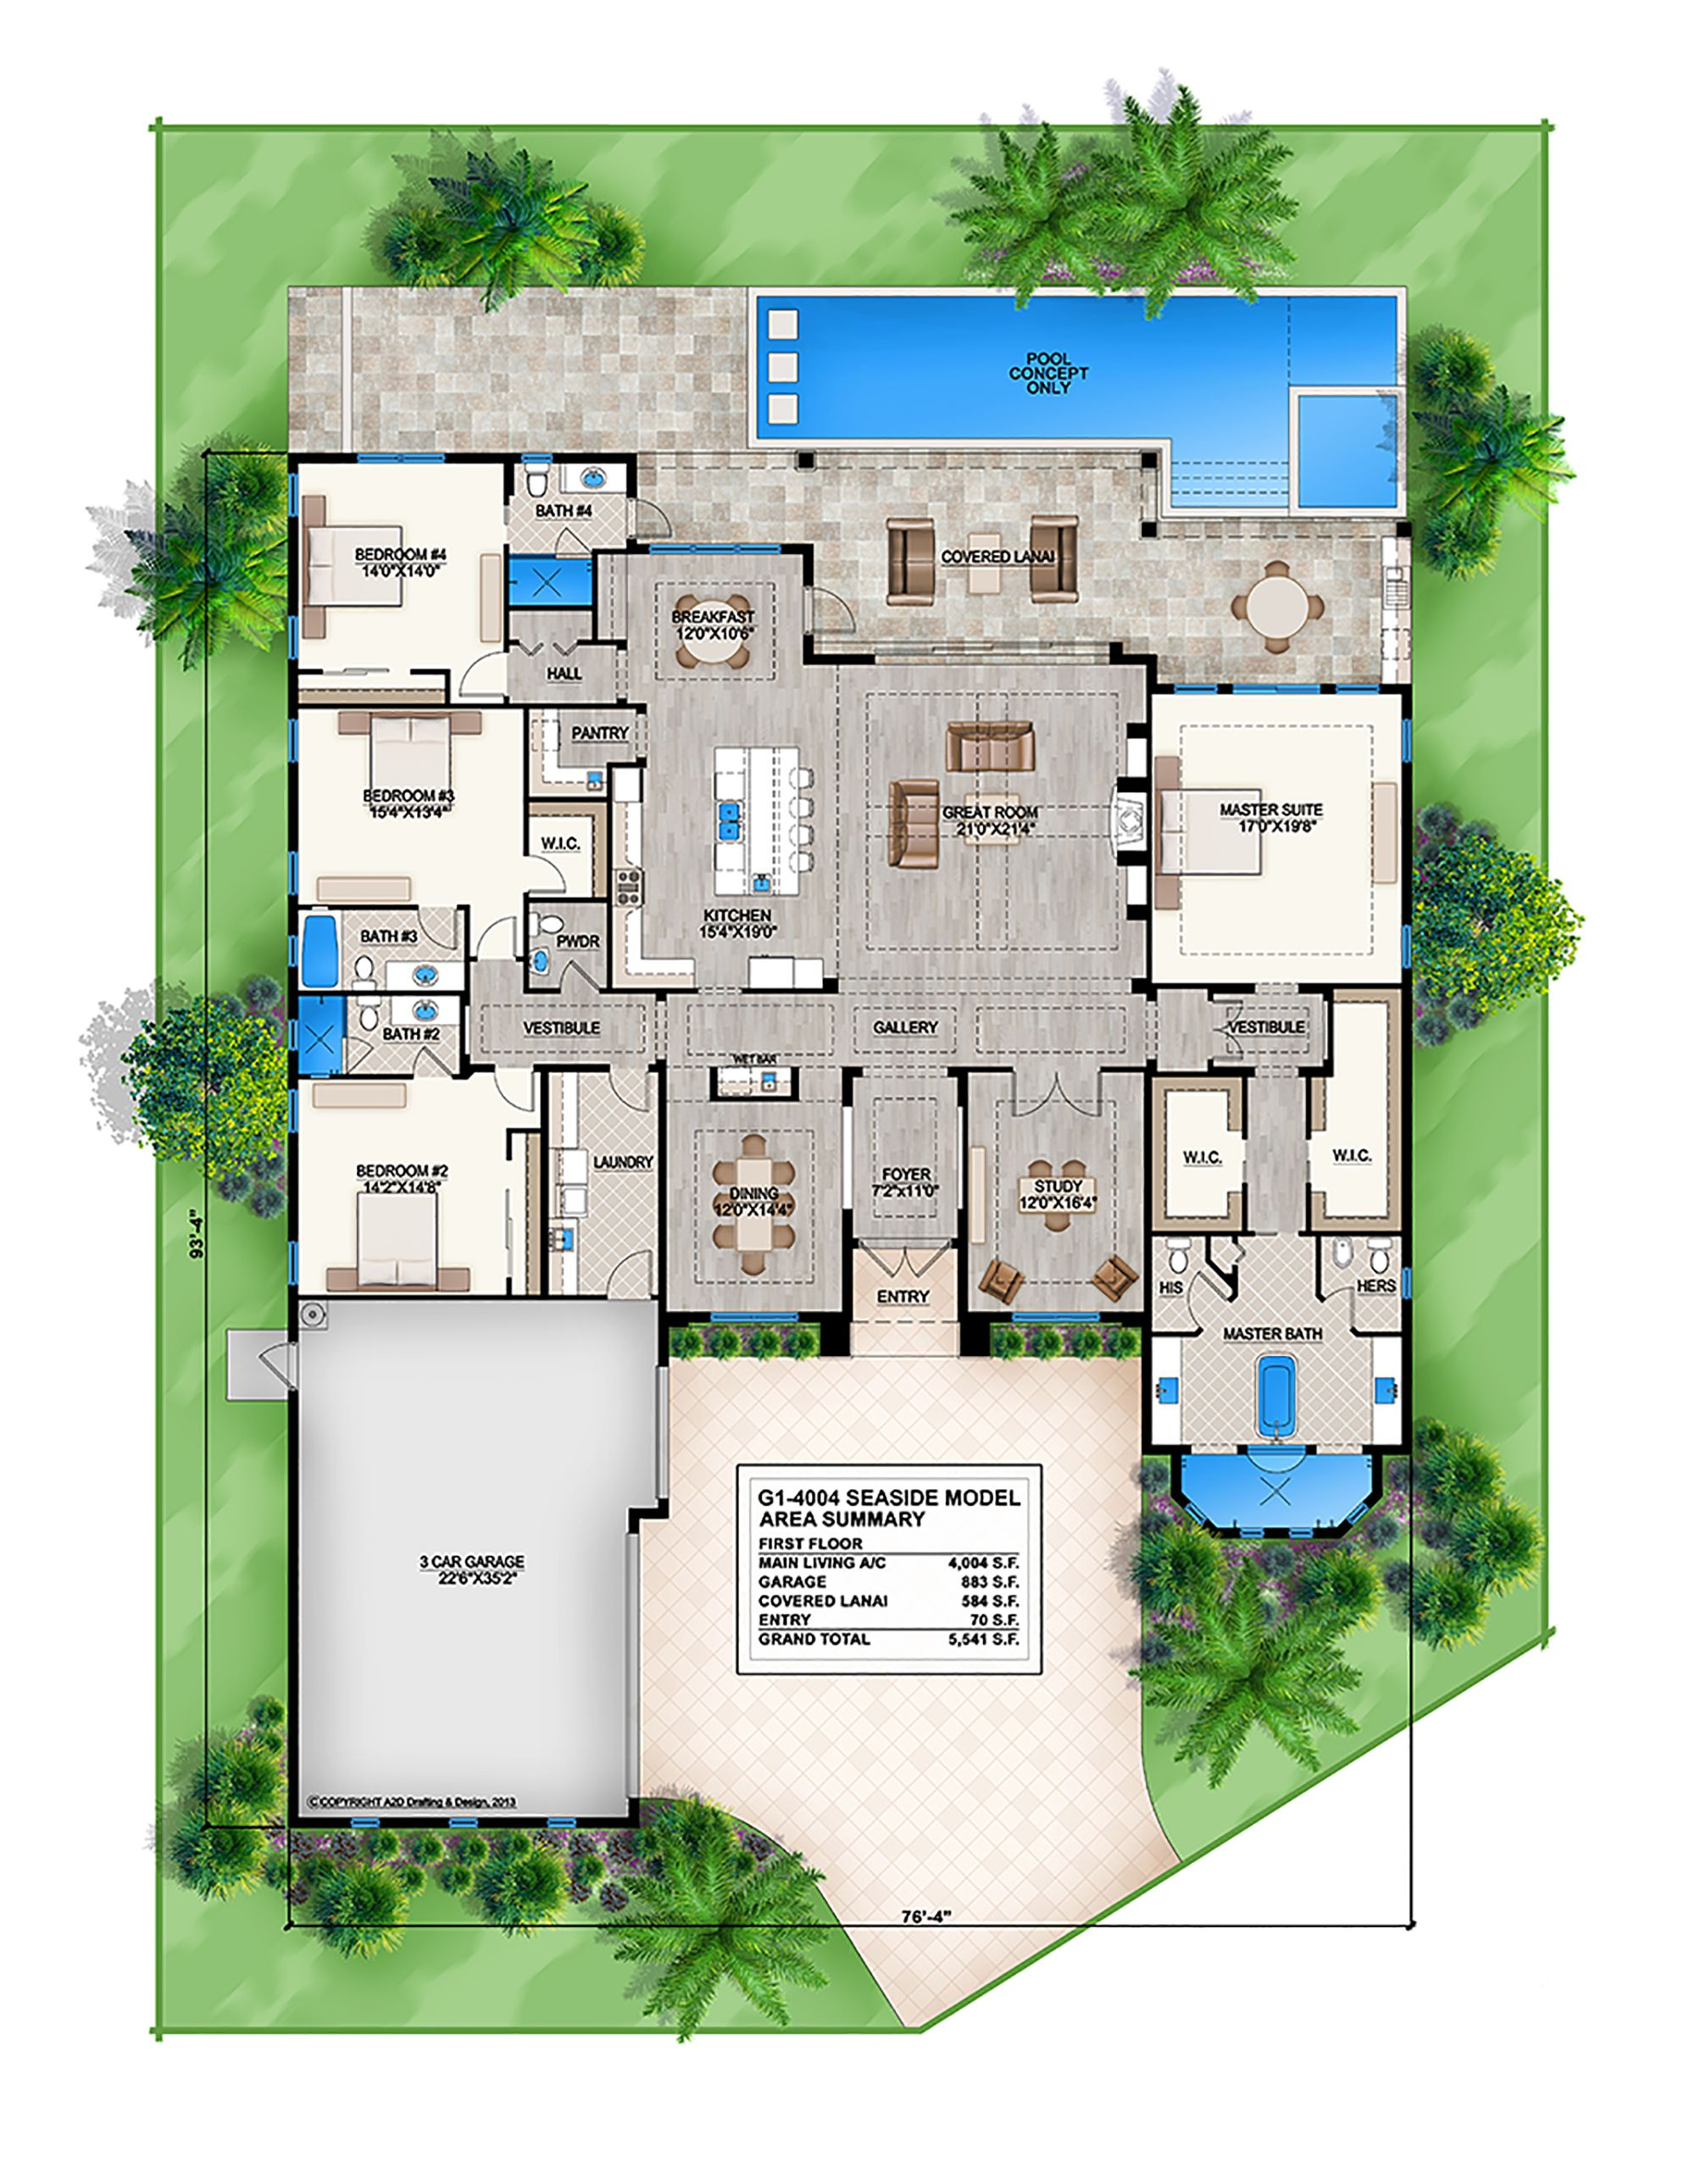 Contemporary House Plans contemporary modern house plan no 3713 v1 by drummond house plans contemporary Offered By South Florida Design This 2 Story Coastal Contemporary House Plan Features Great Room